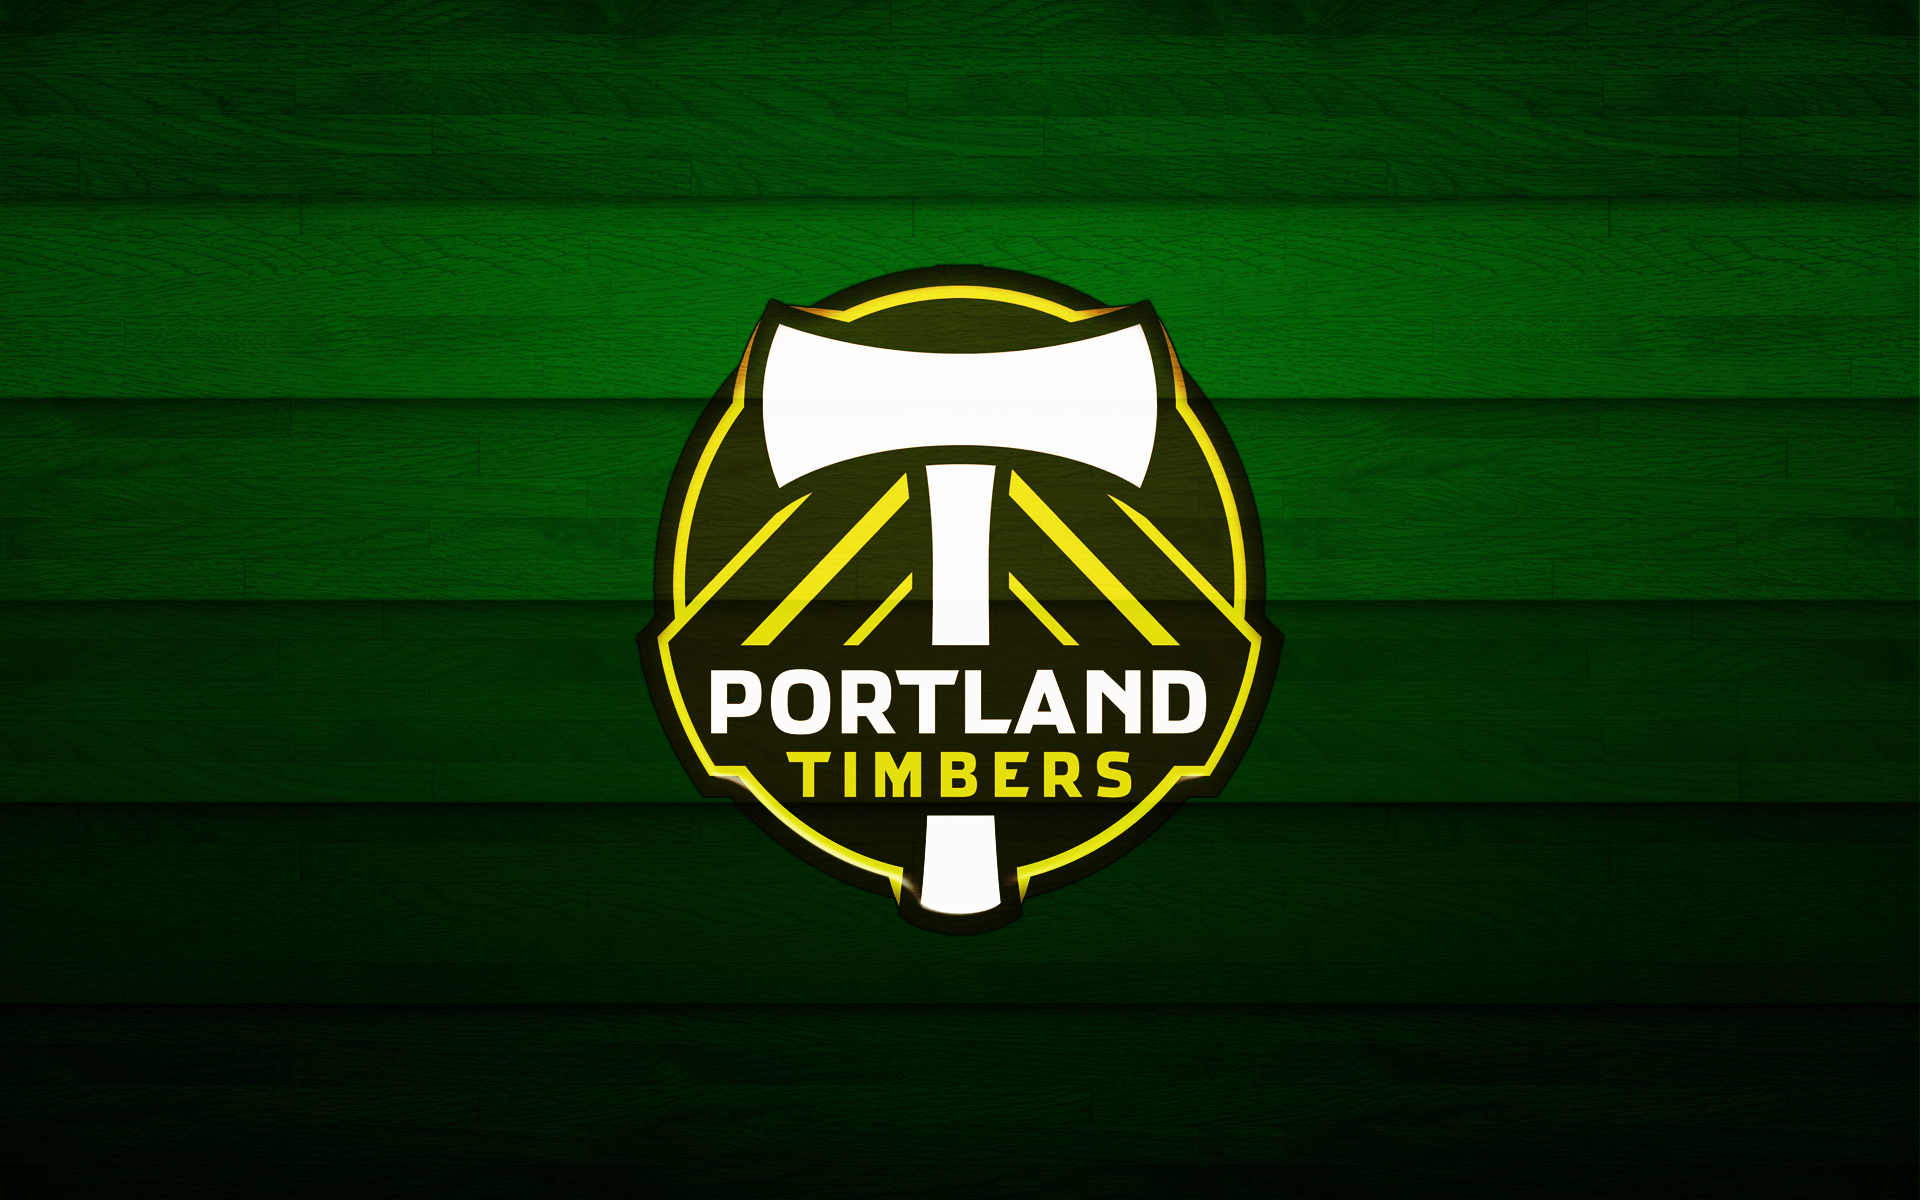 1920x1200 - Portland Timbers Wallpapers 1